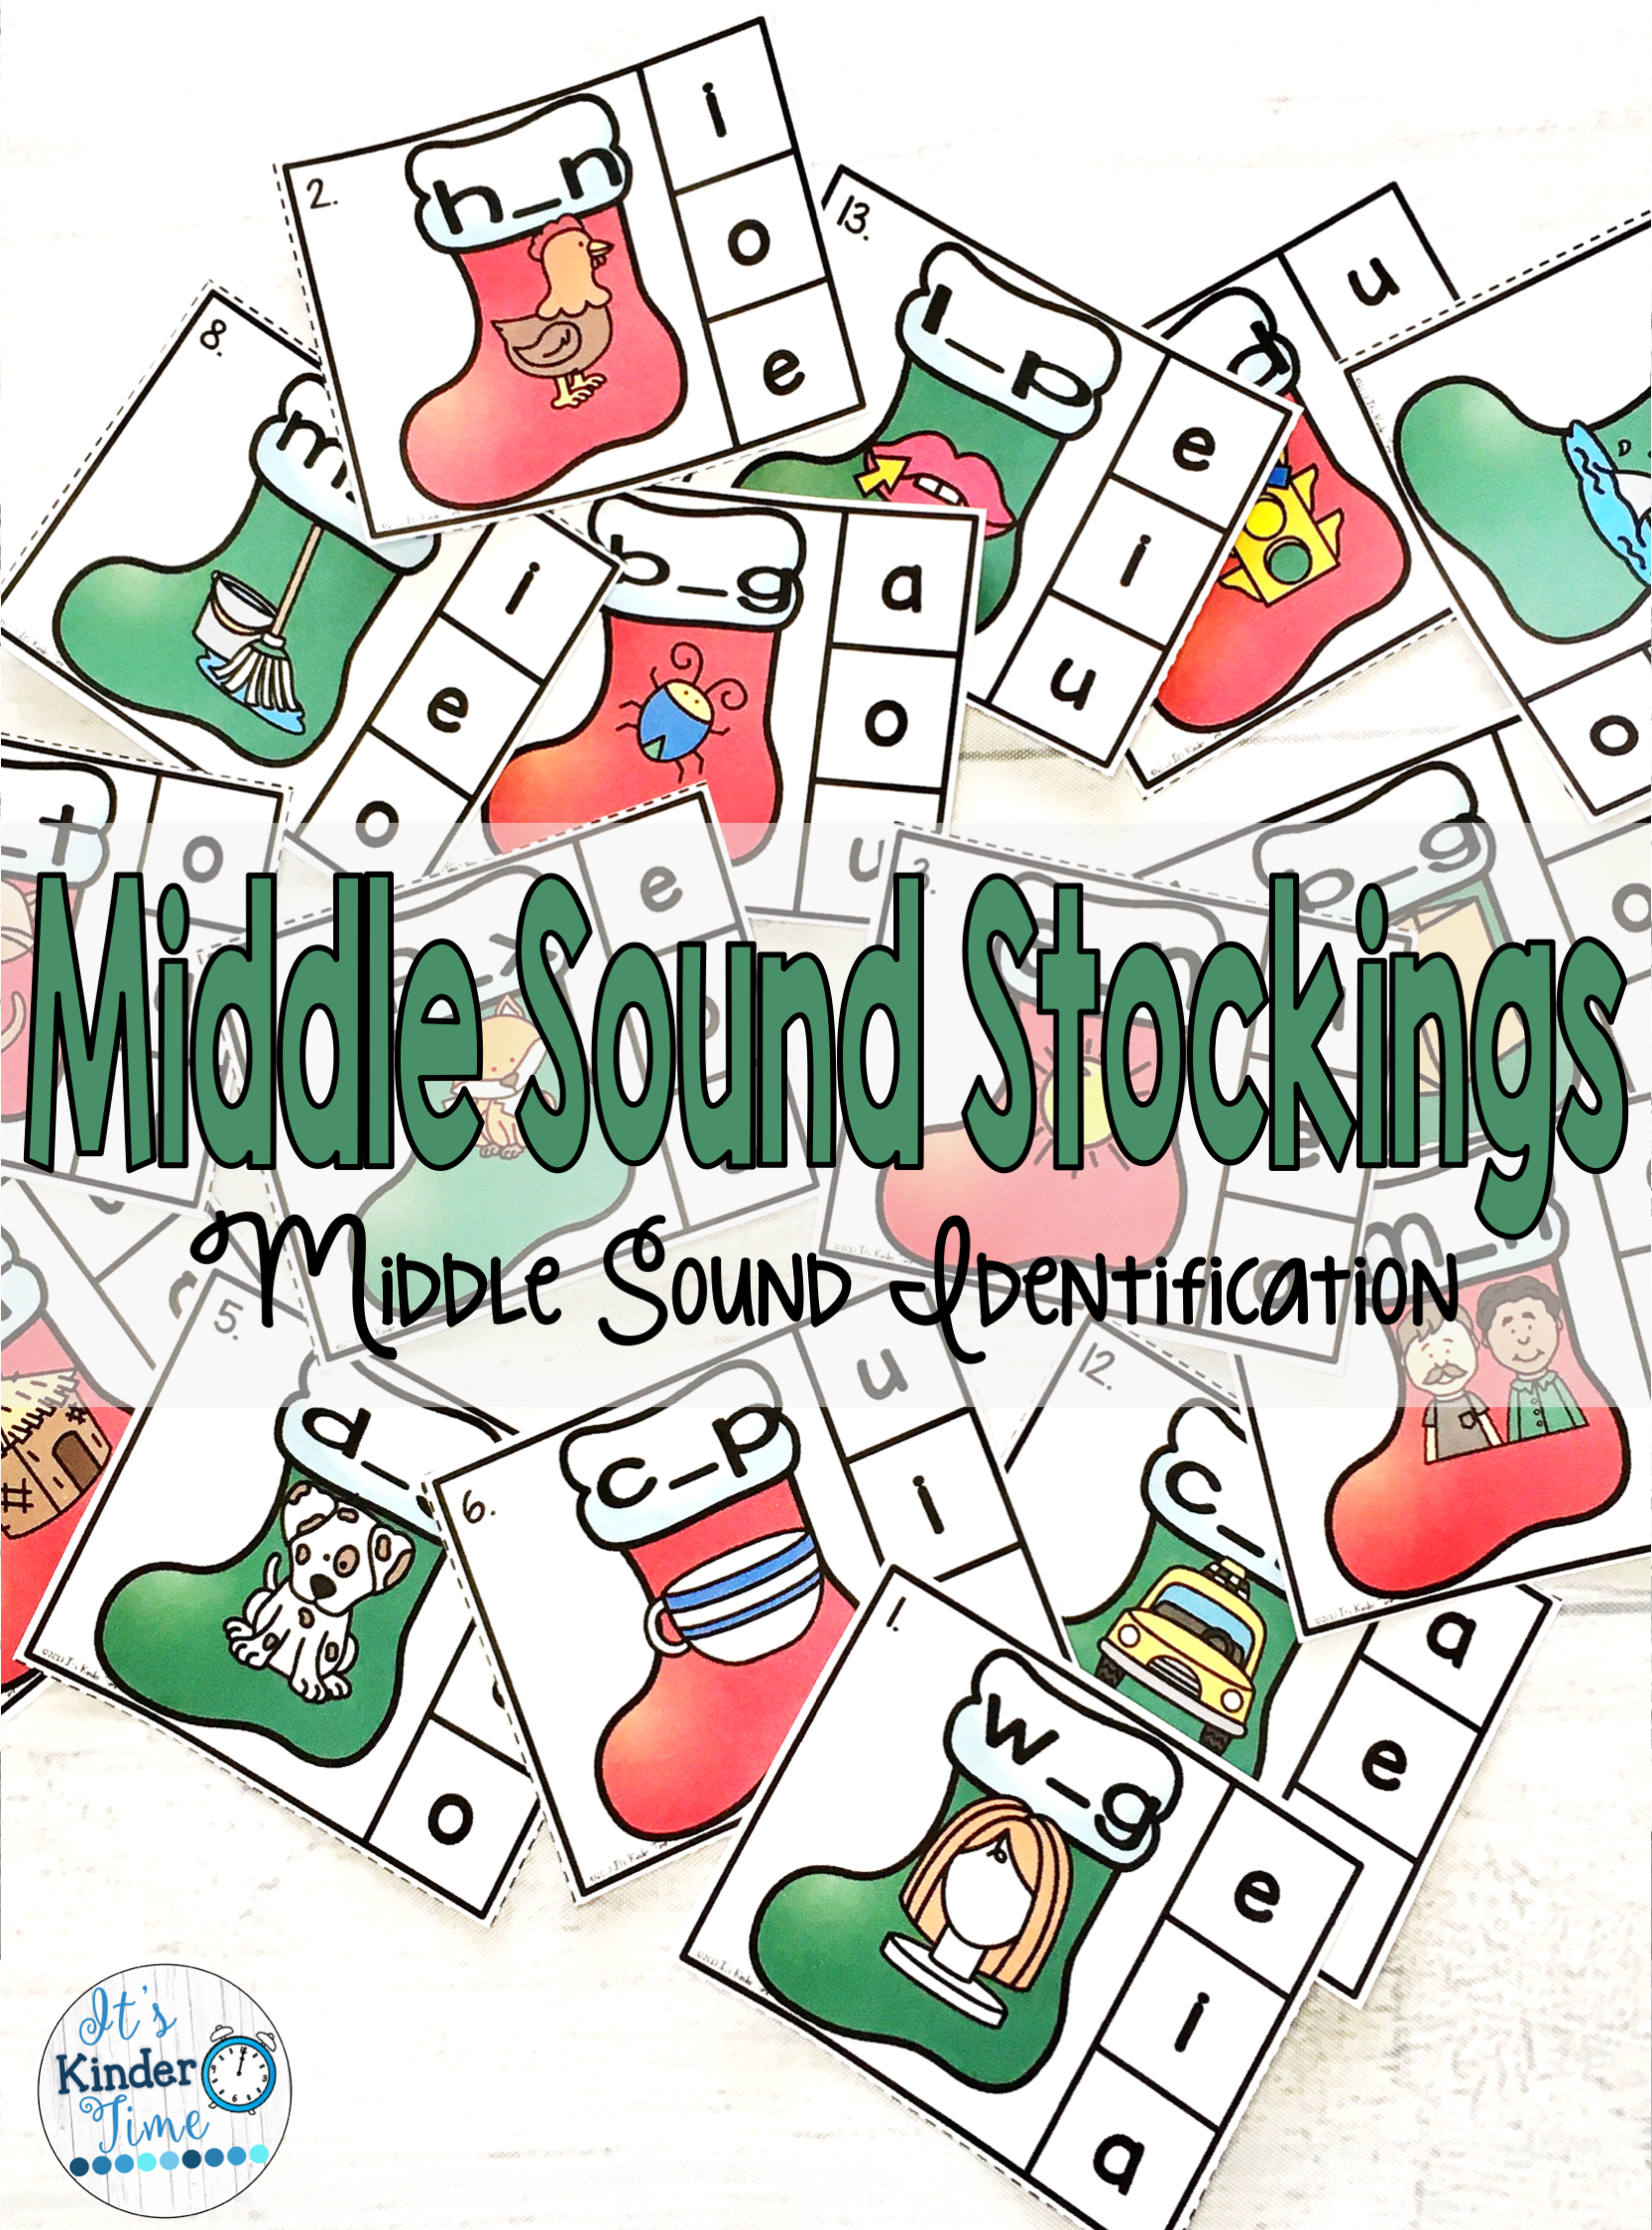 This Stocking Center Focuses On Identifying The Middle